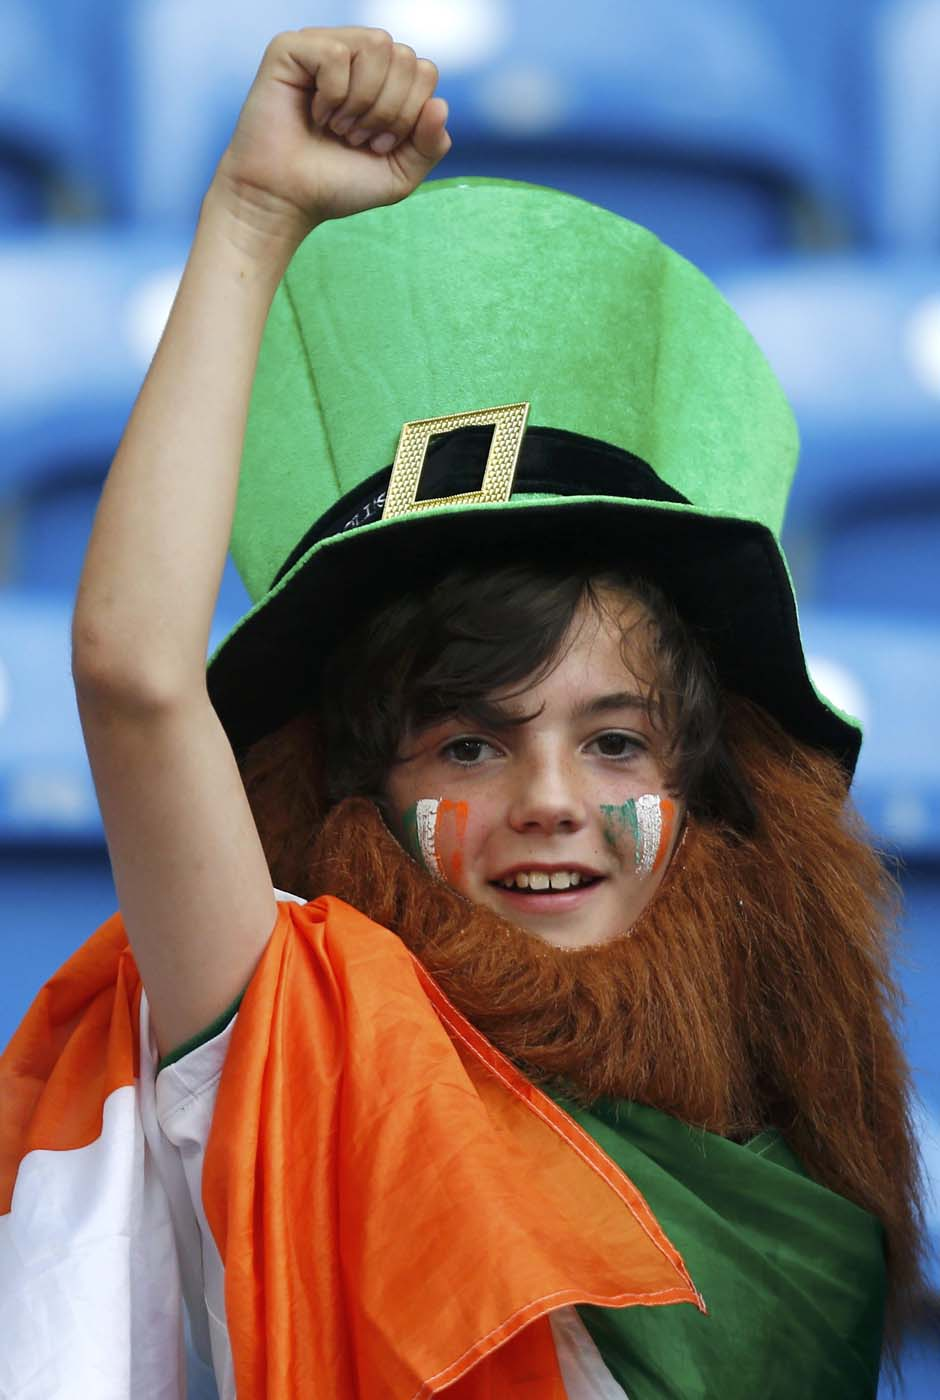 A young Irish soccer fan cheers before the Group C Euro 2012 soccer match between Italy and Ireland at the city stadium in Poznan June 18, 2012. (Dominic Ebenbichler/Reuters)